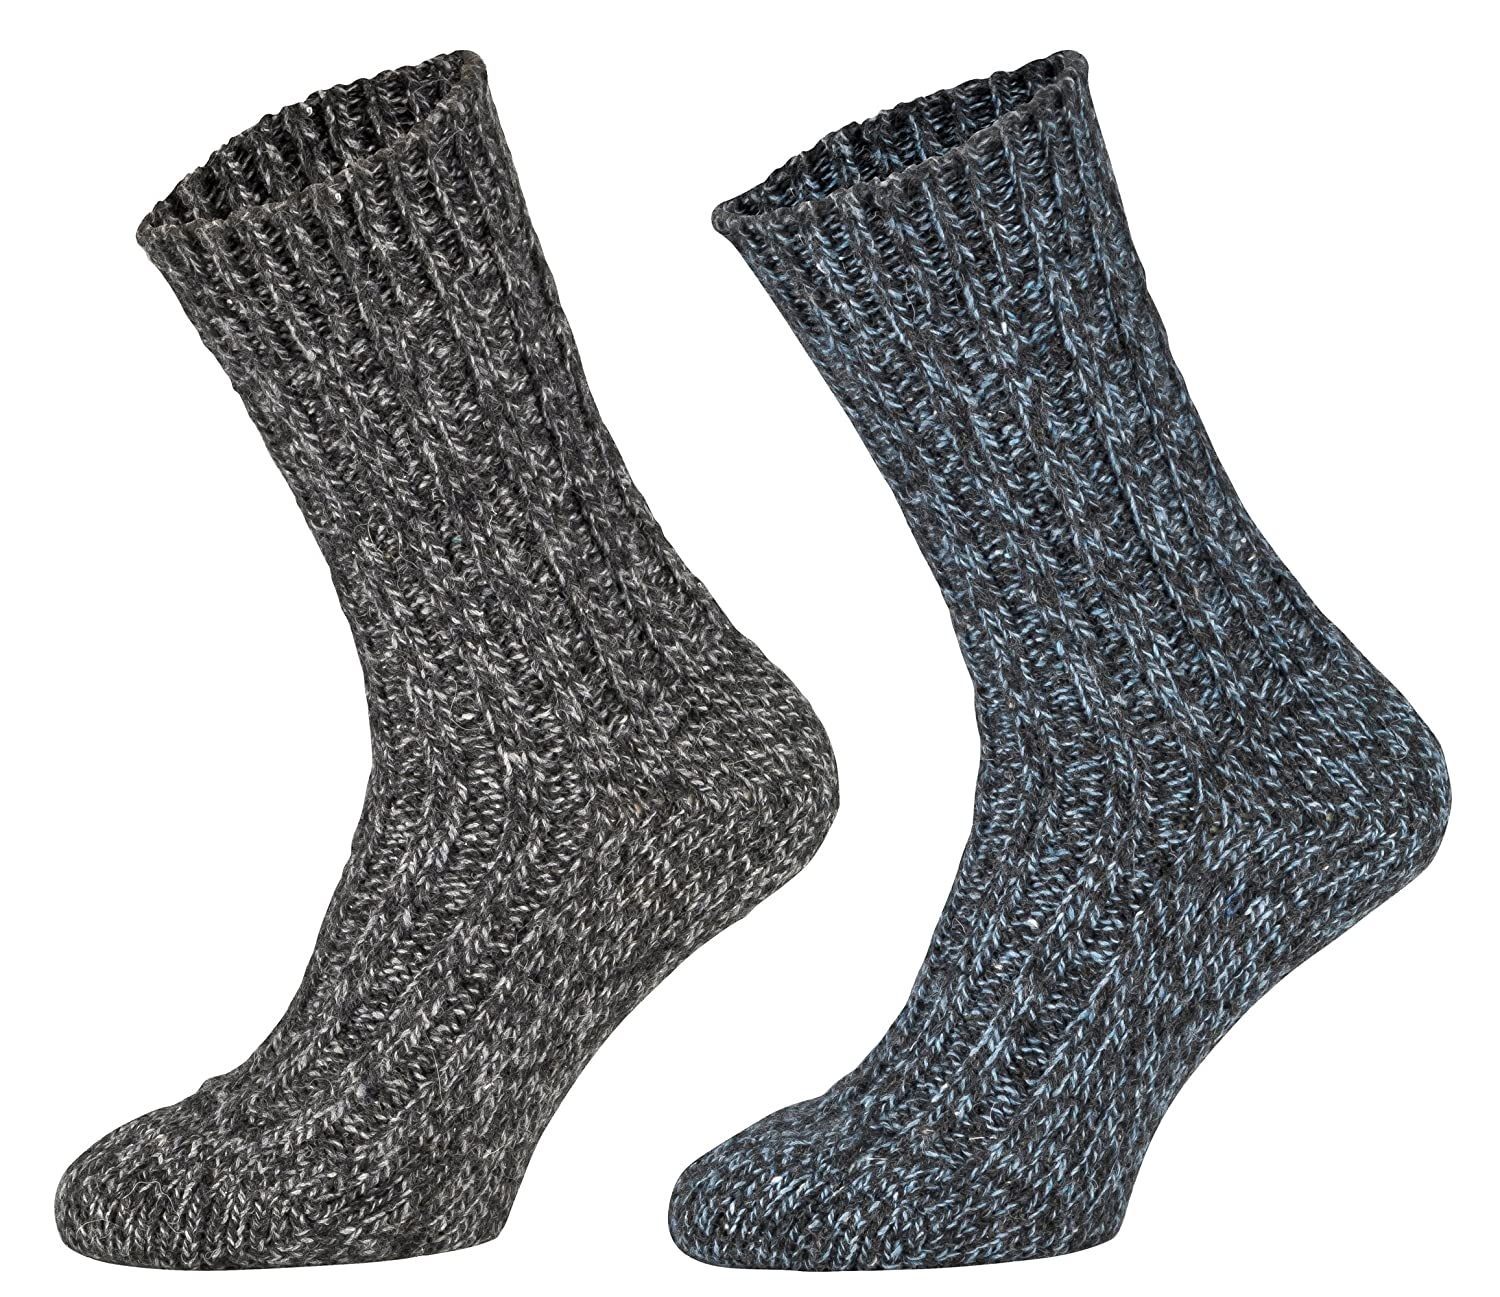 Tobeni 4 Pairs of thick warm Norwegian Socks Pre-washed Winter Wool Socks for Women and Men 132.021